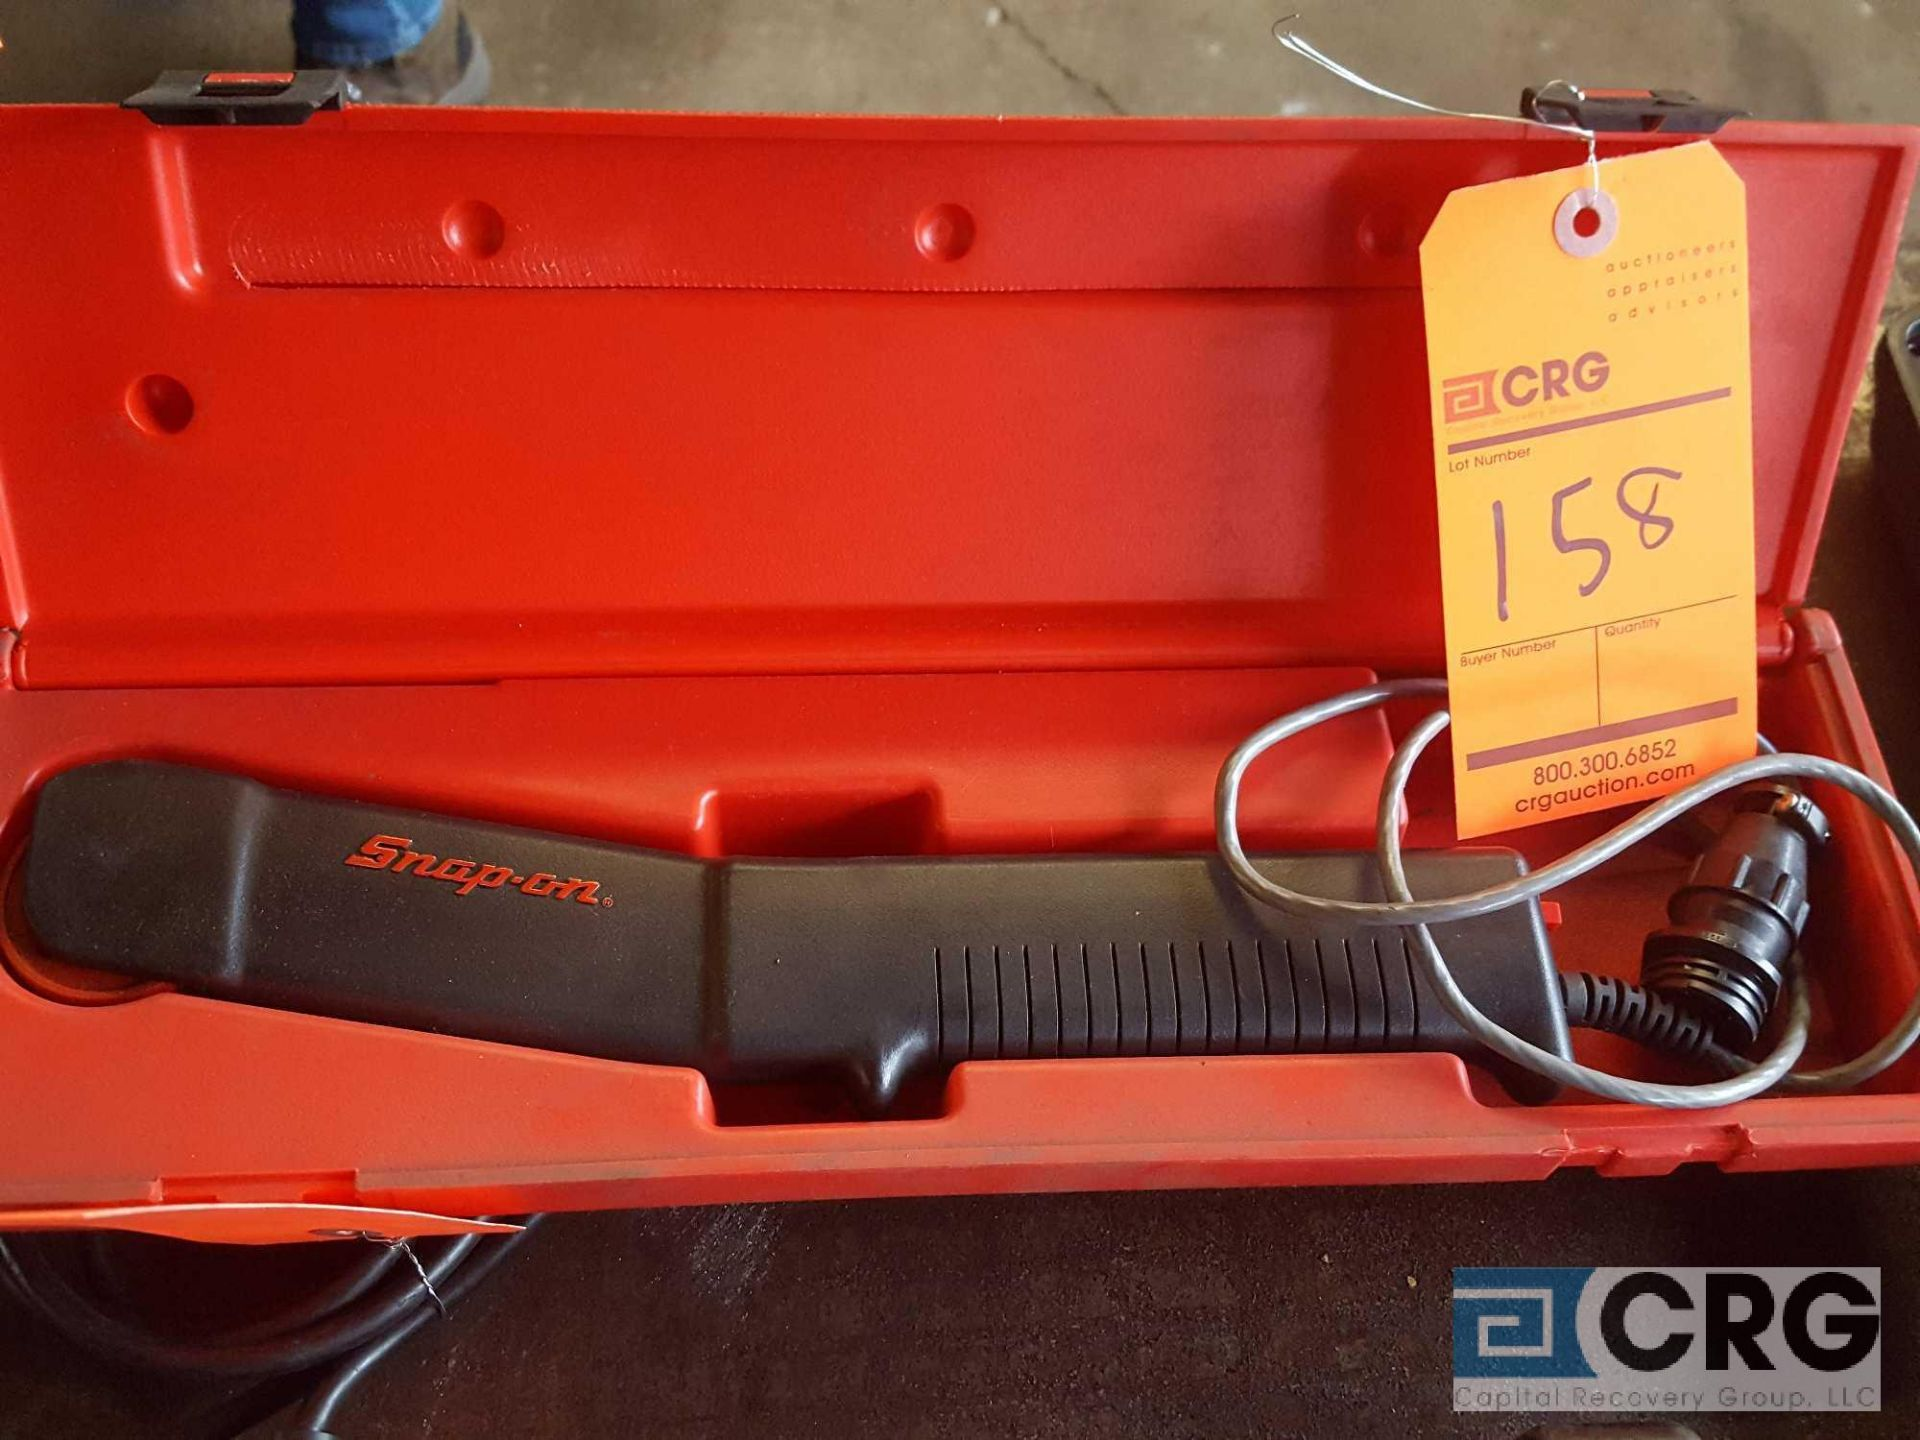 Lot of SNAP-ON DIAGNOSTIC DEVICES including (1)MT 2500 scanner and (1) MT 3000-420 power balance - Image 3 of 3